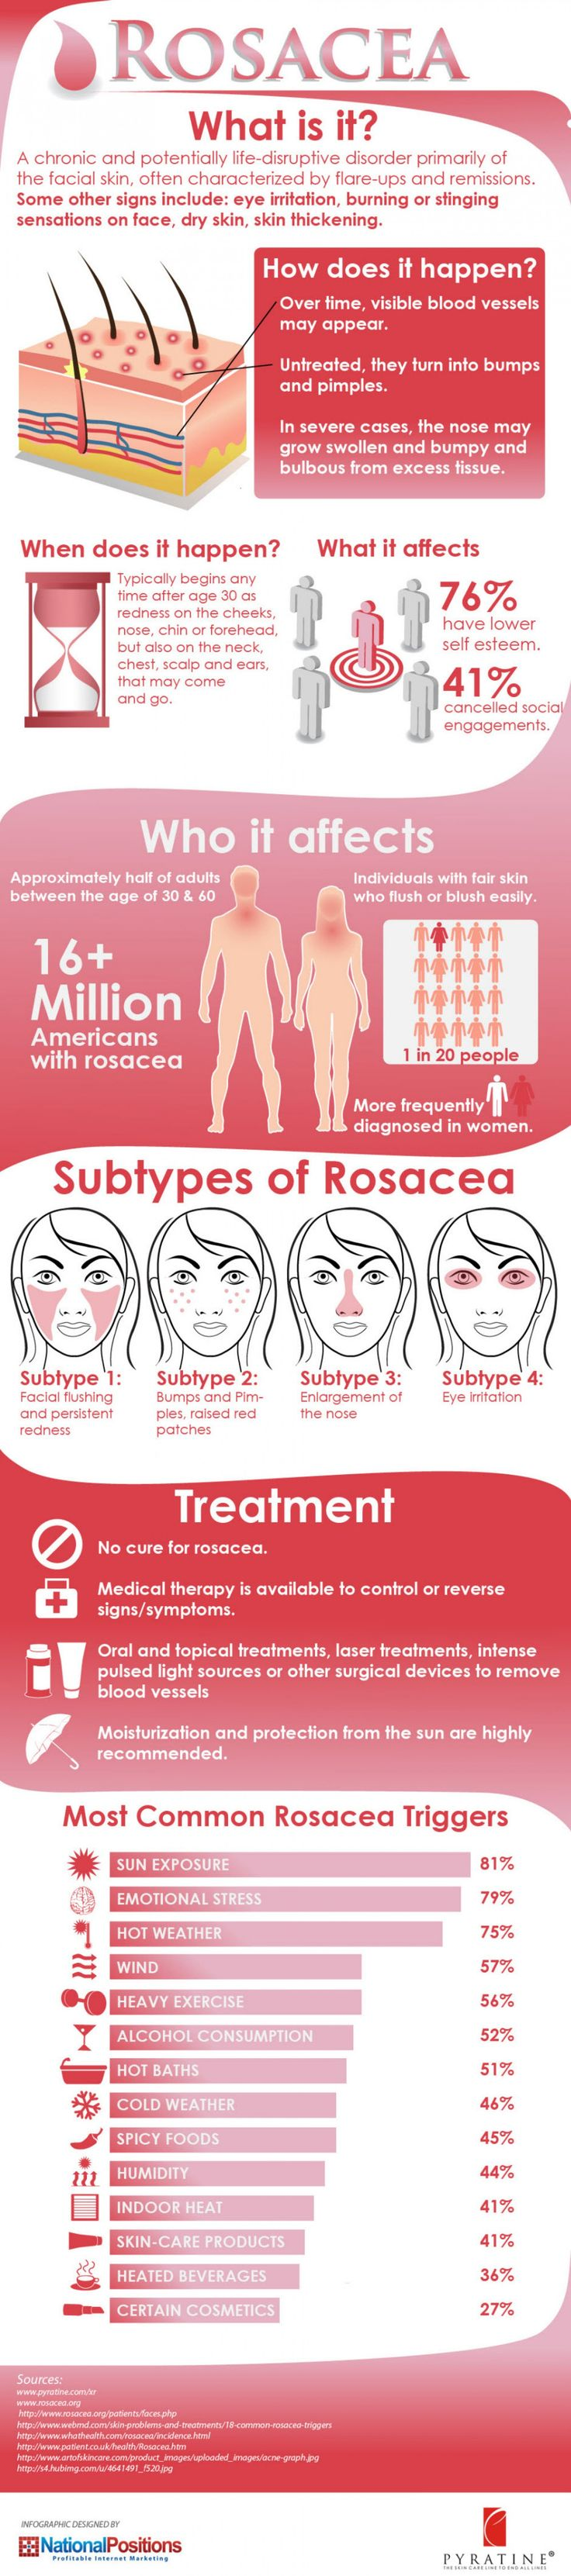 Rosacea ....... Rosacea is a chronic sensitive skin condition often involving inflammation of the cheeks, nose, chin, and forehead. The skin may experience sensitivity, excessive flushing, persistent redness, broken capillaries or breakouts ........ Decrease redness/inflammation and increase hydration are key to control Rosacea